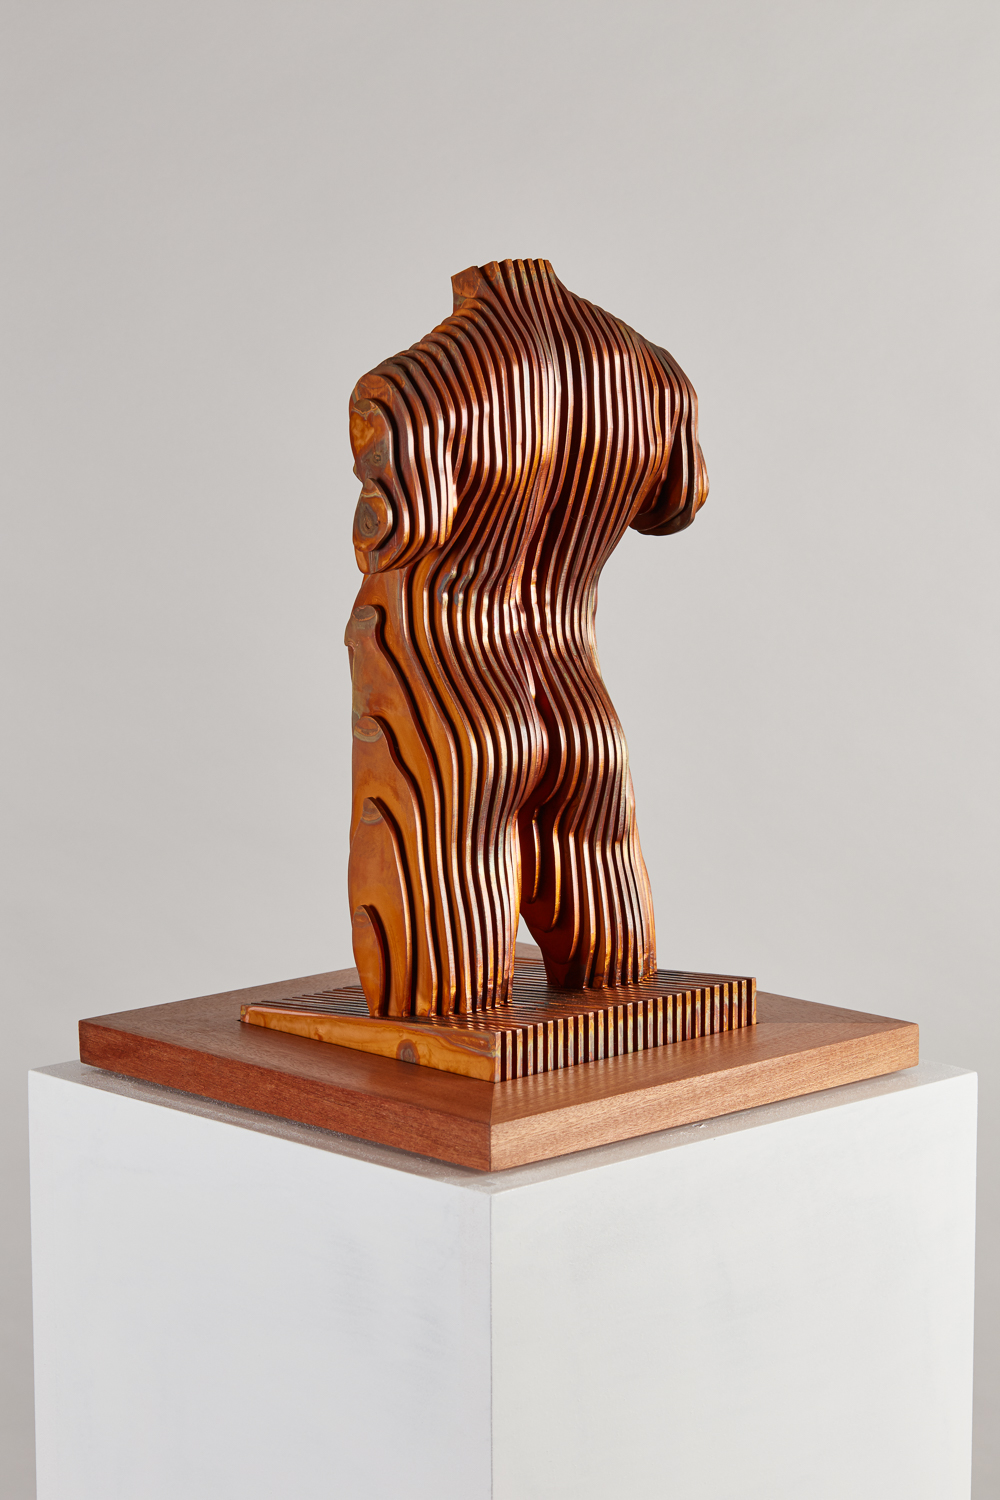 2016 Male Torso 35cm x 16cm x 16cm Corten steel with copper plate.jpg